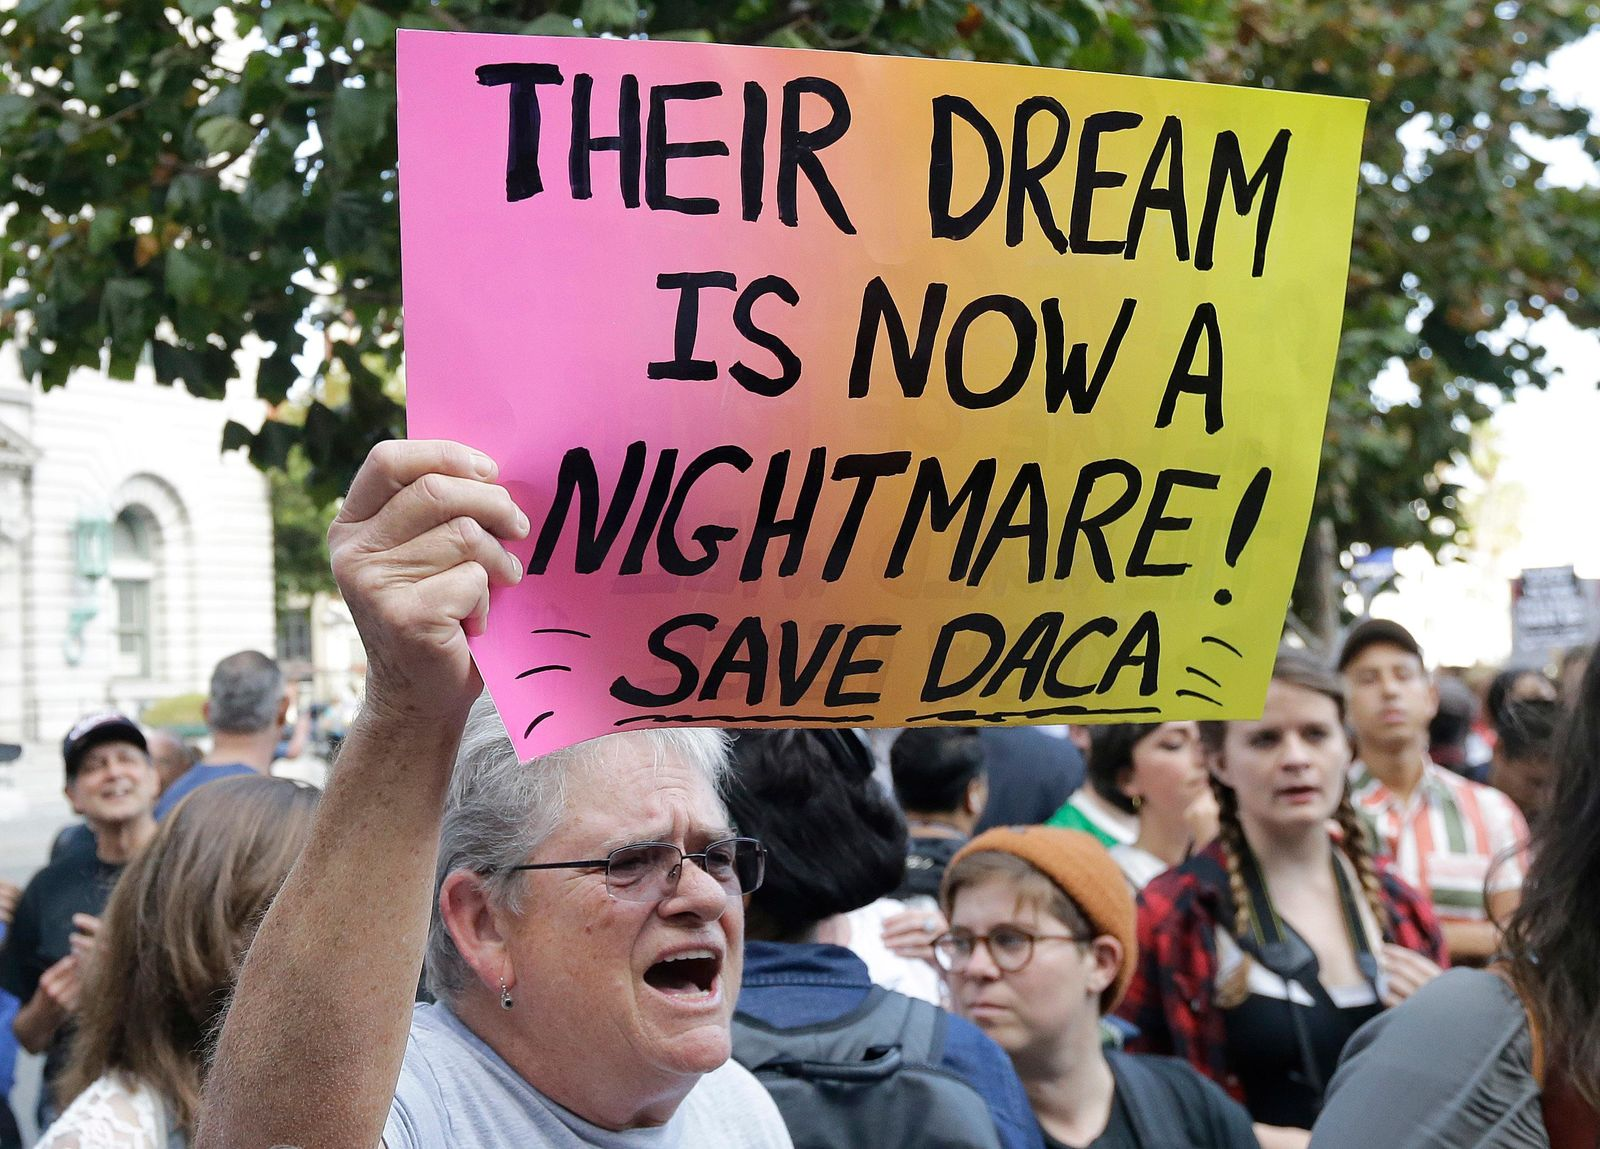 FILE - In this Sept. 15, 2017, file photo, Judy Weatherly, a supporter of the Deferred Action for Childhood Arrivals (DACA) holds up a sign during a protest outside of the Federal Building in San Francisco. (AP Photo/Jeff Chiu, File)